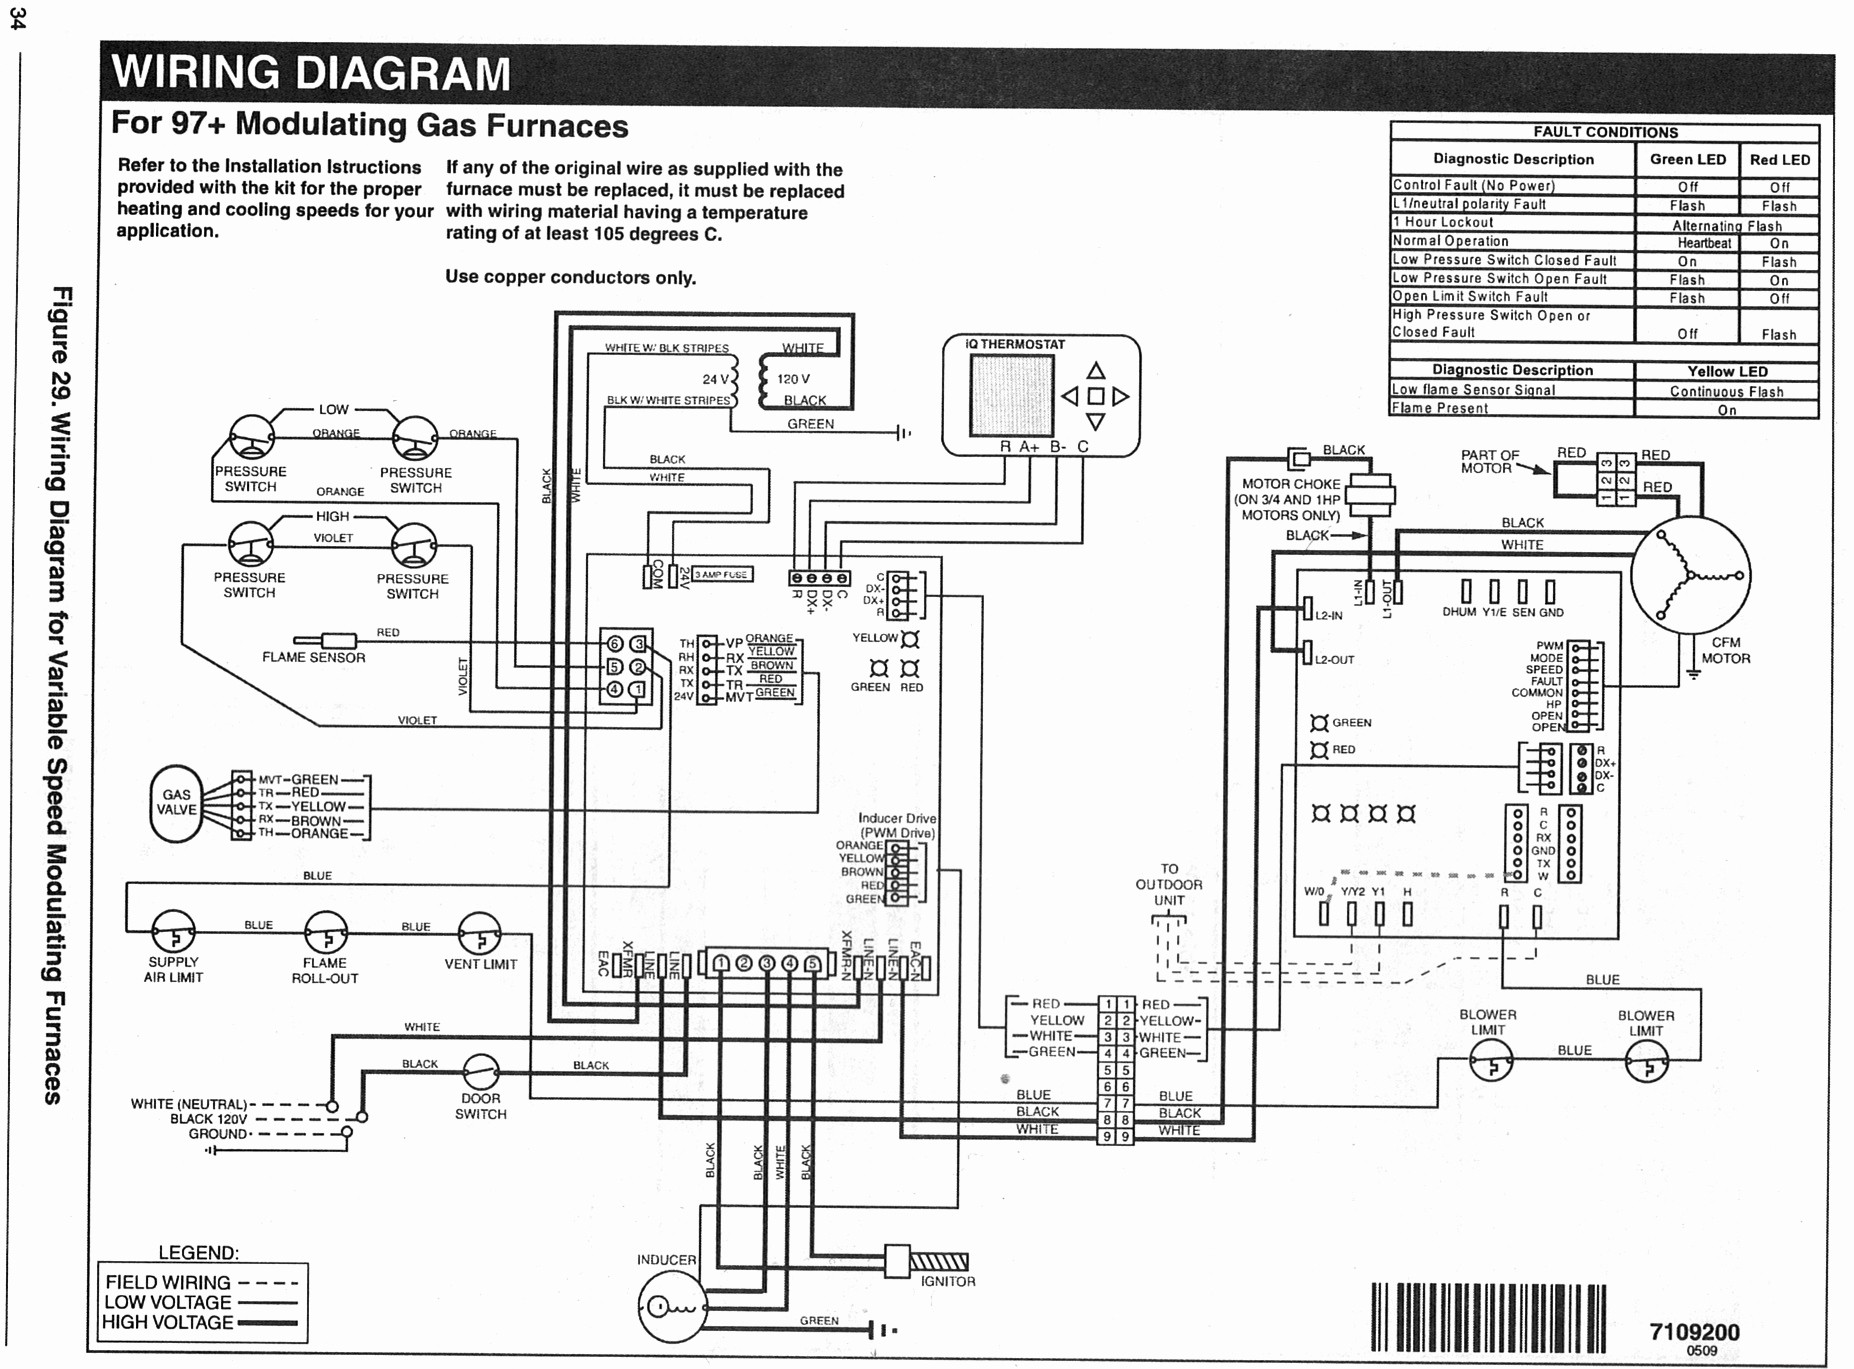 White Rodgers thermostat Wiring Diagram Wiring Diagram for